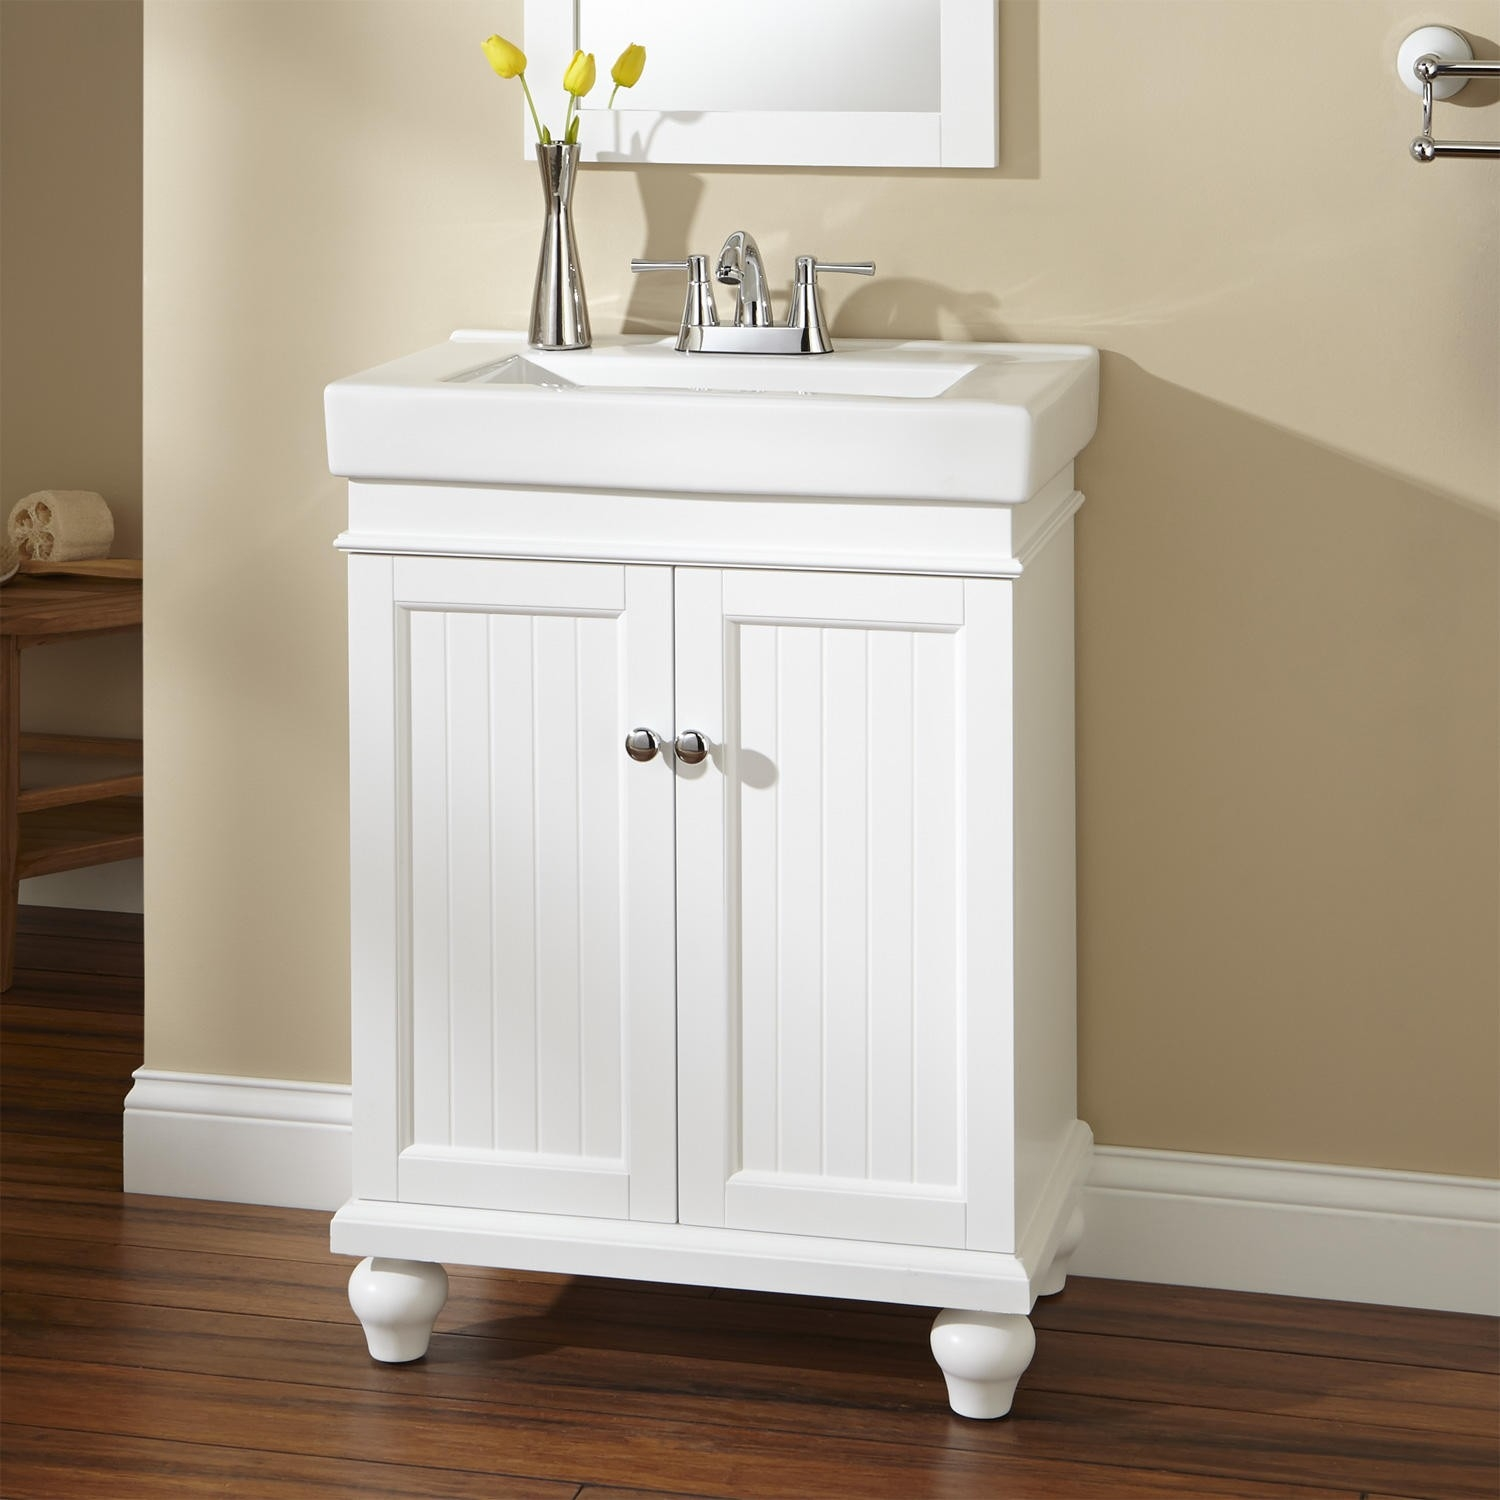 Permalink to 18 Inch Wide Bathroom Vanity Cabinet